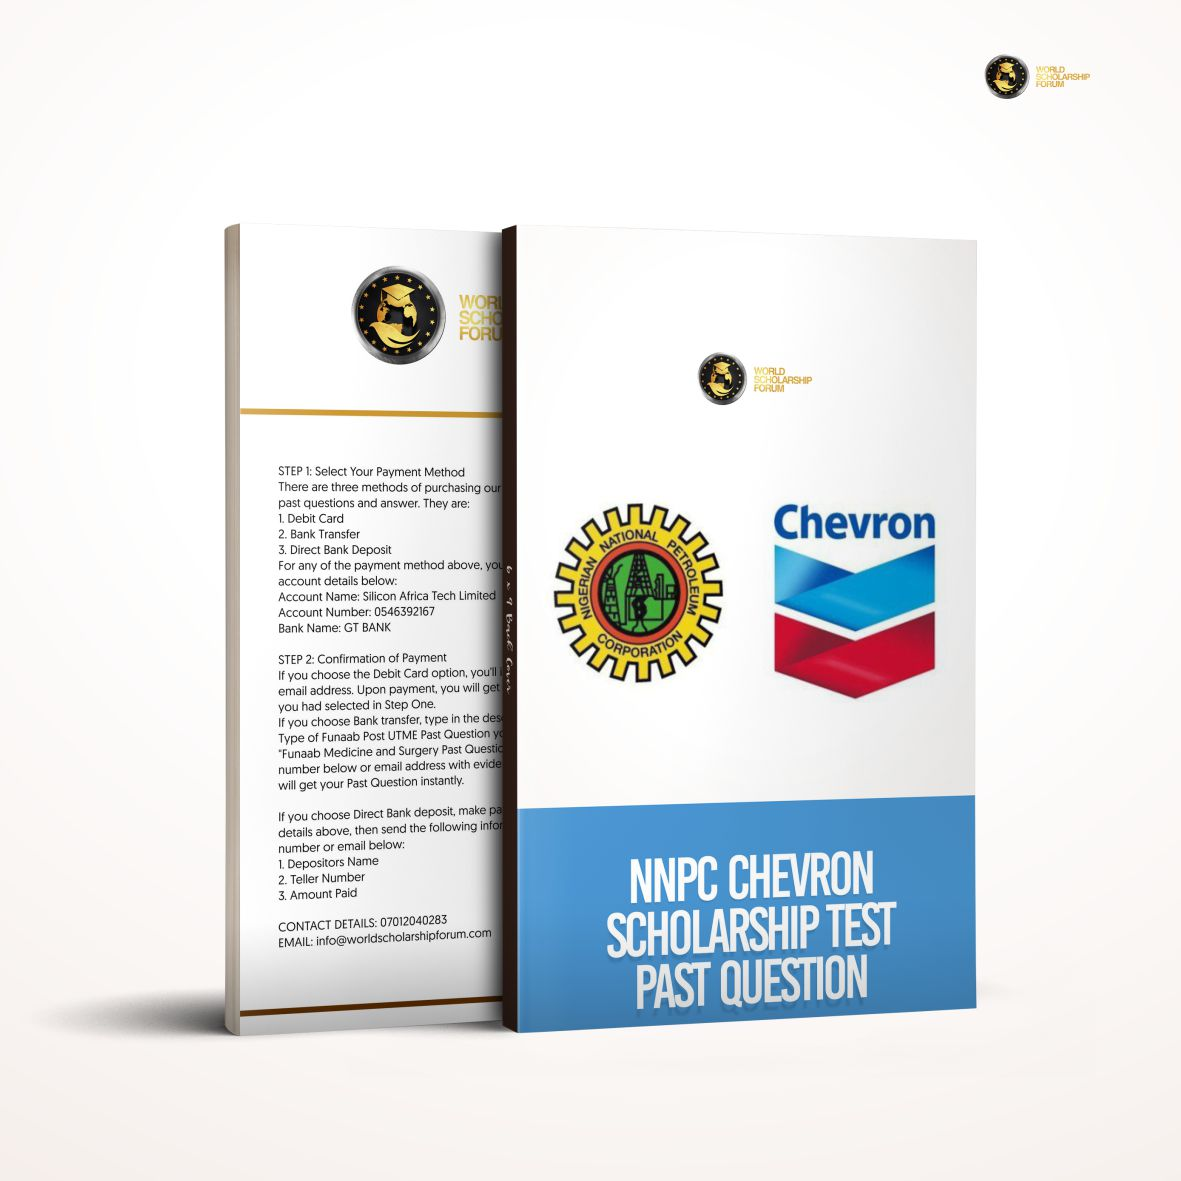 nnpc-chevron-scholarship-test-past-questions-answers